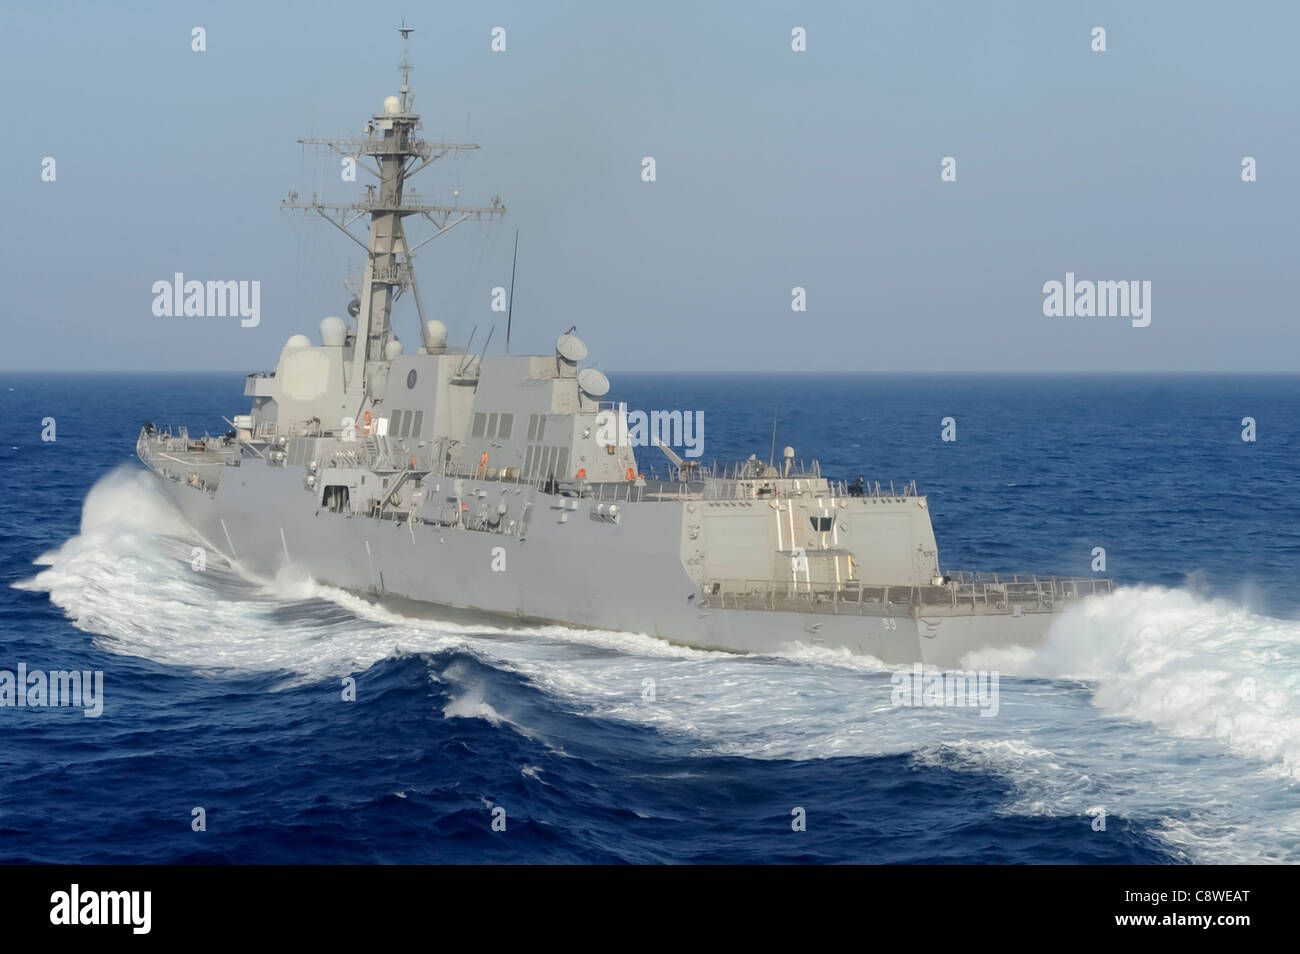 multi-national force established to conduct anti-piracy operations in the Gulf of Aden. - Stock Image